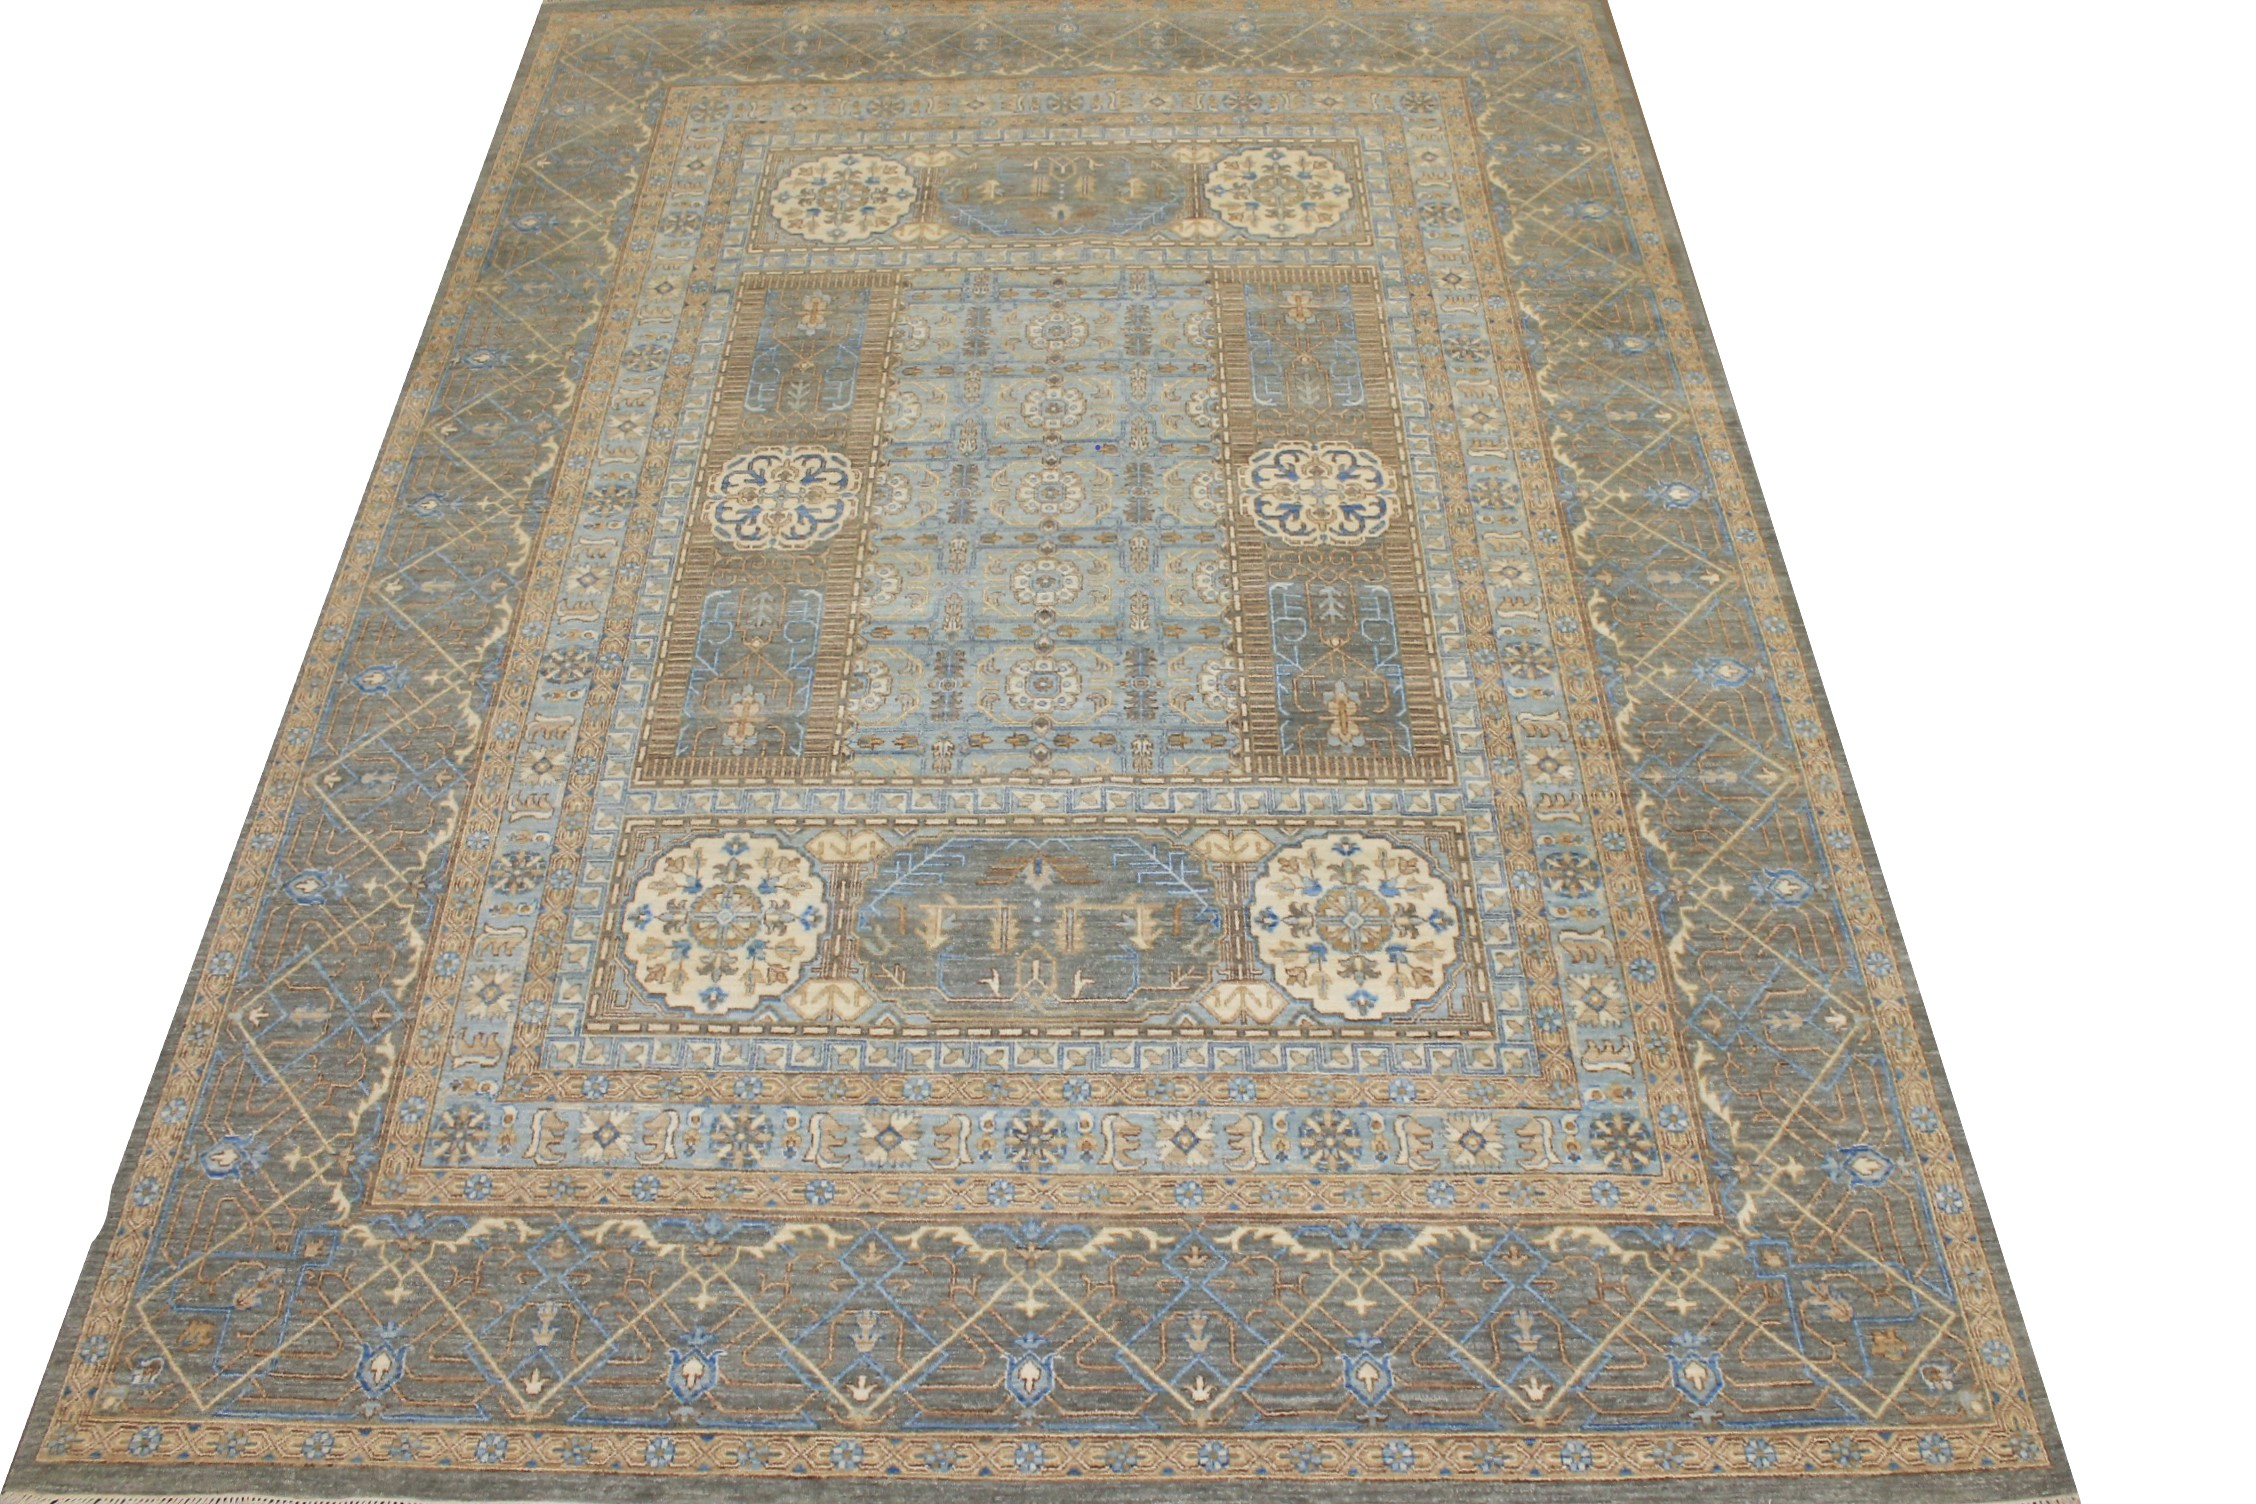 9x12 Traditional Hand Knotted Wool Area Rug - MR024866